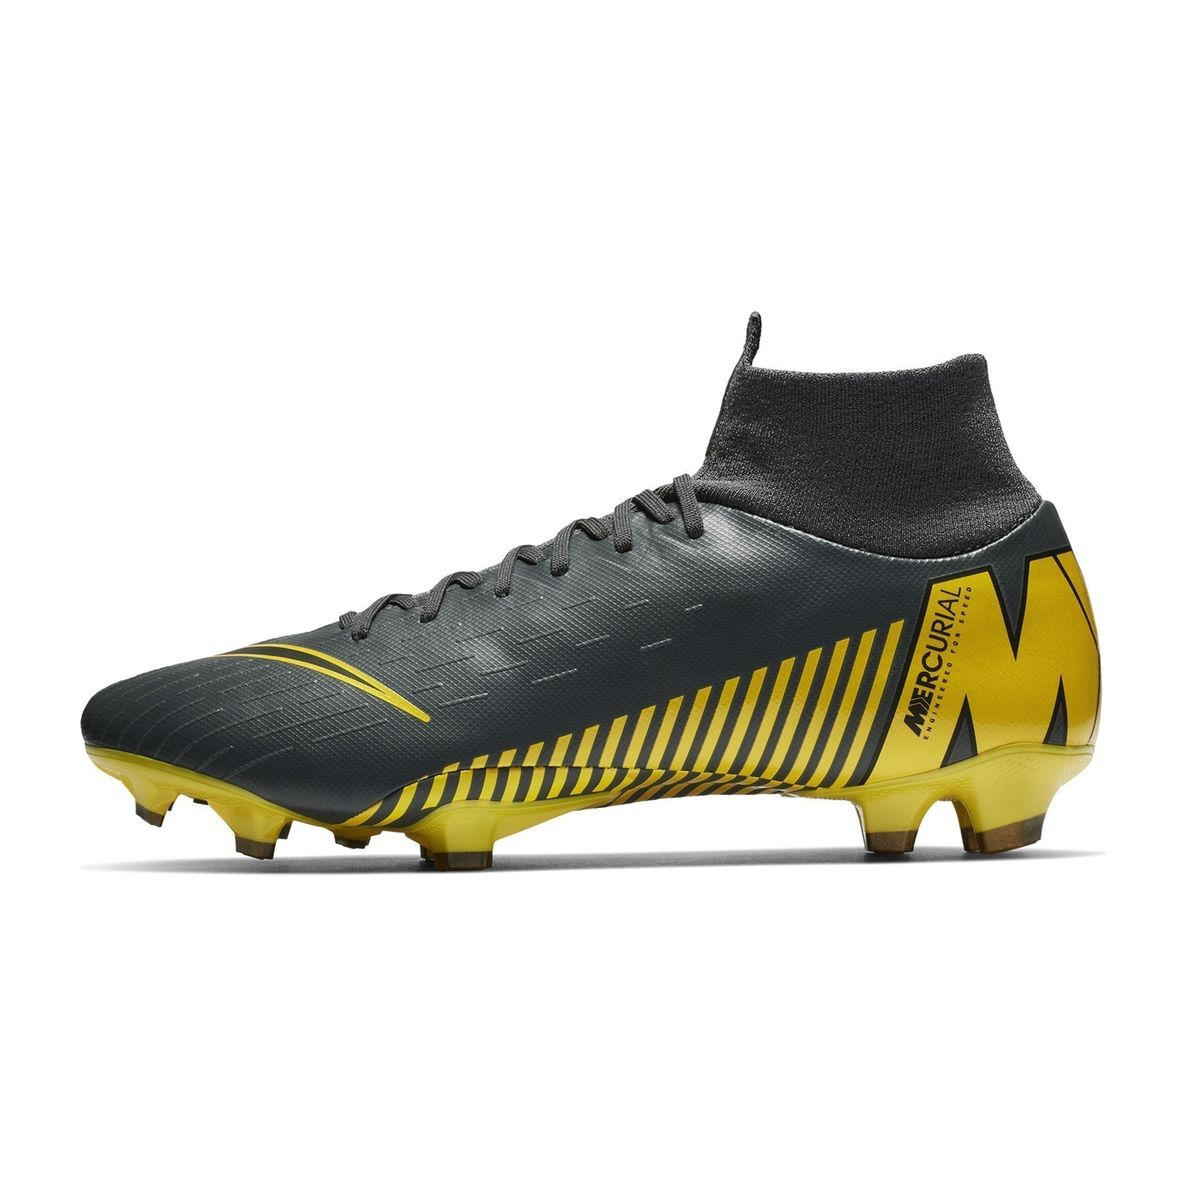 Chaussures Football Nike Mercurial Superfly Vi Pro Df Fg